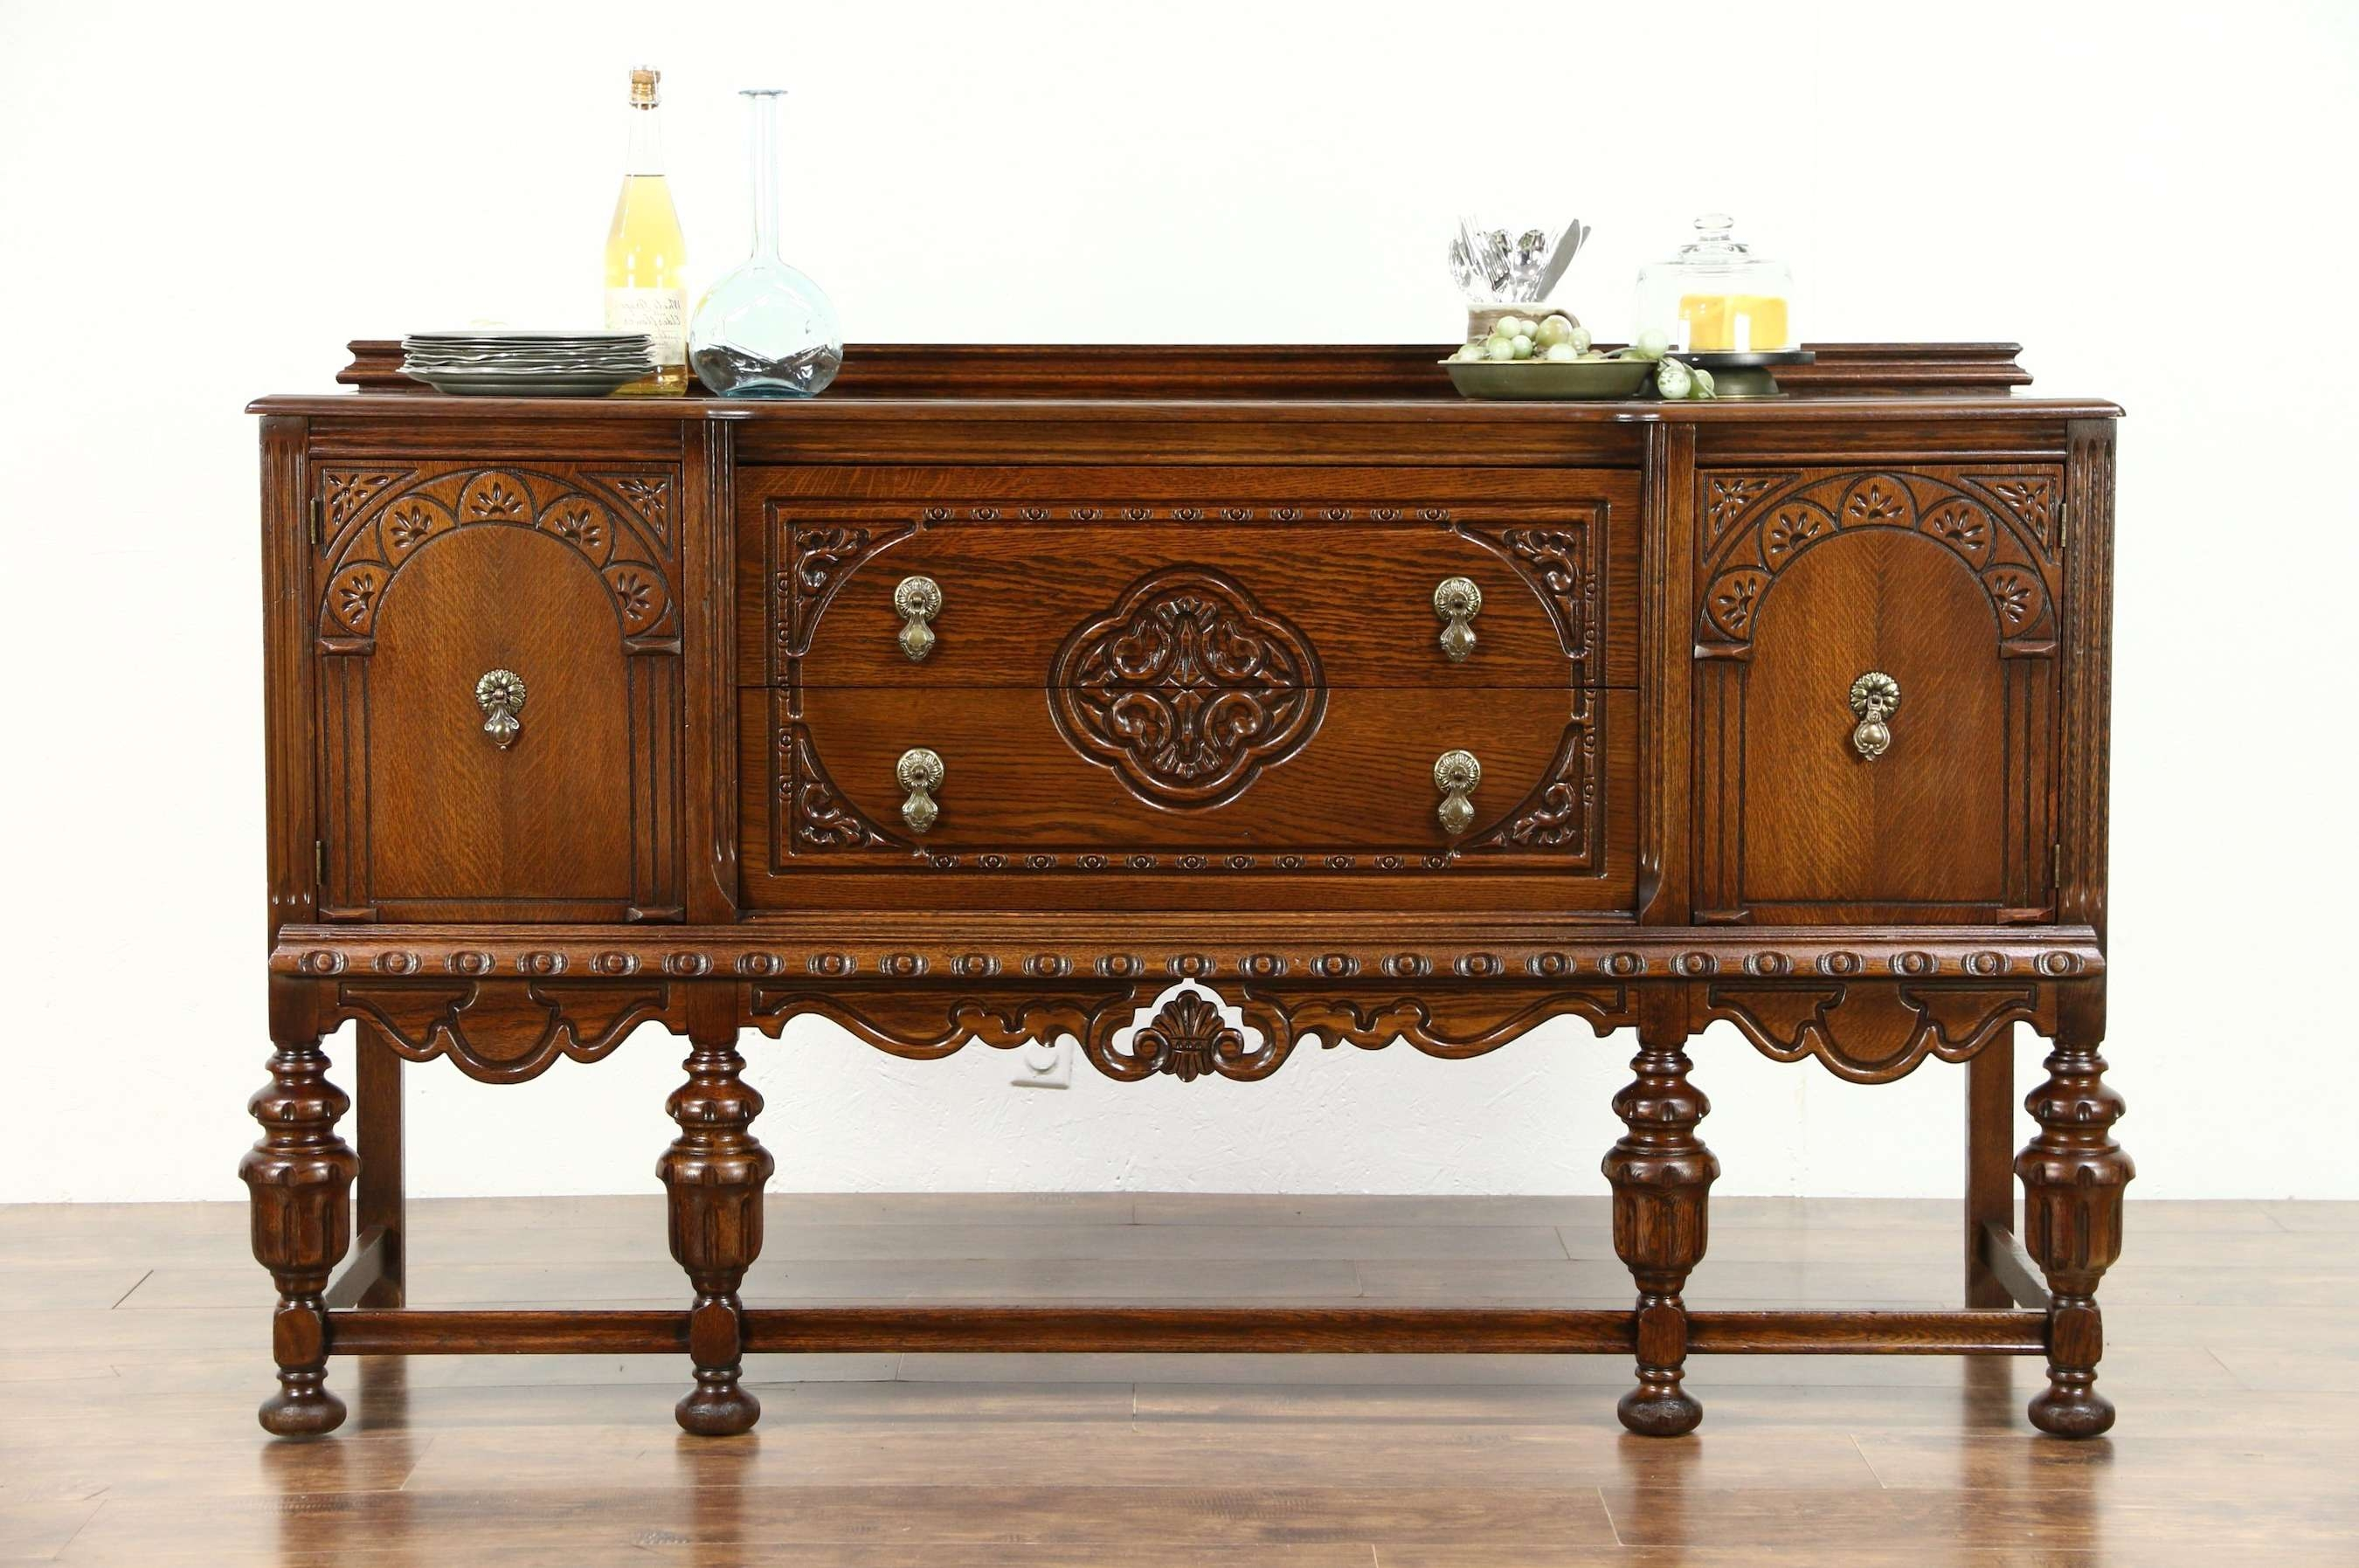 Tudor Design 1925 Antique Carved Oak Sideboard, Server Or Buffet Throughout Antique Oak Sideboards (View 5 of 20)